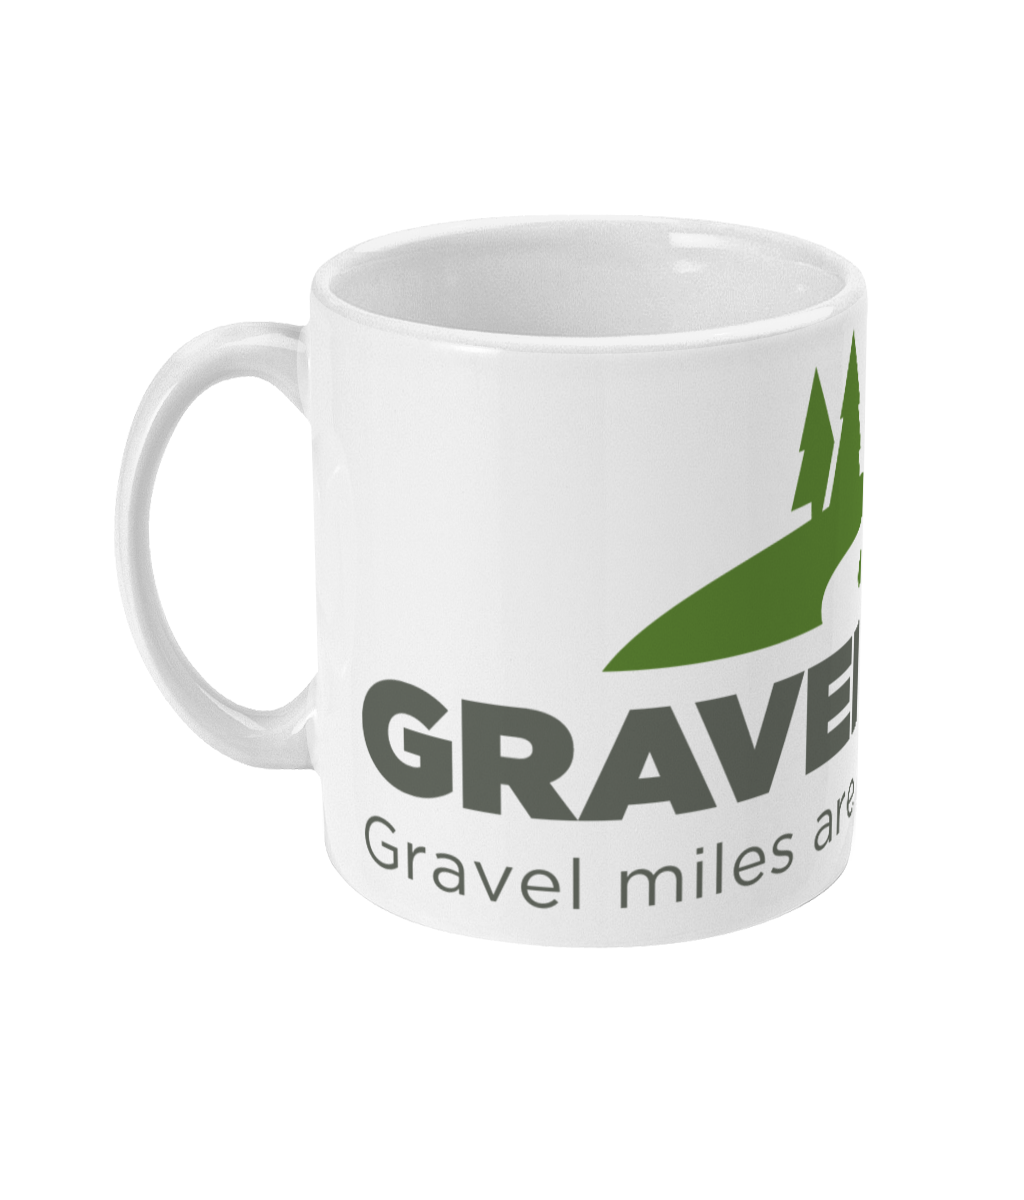 MUG - Gravel miles are the best miles